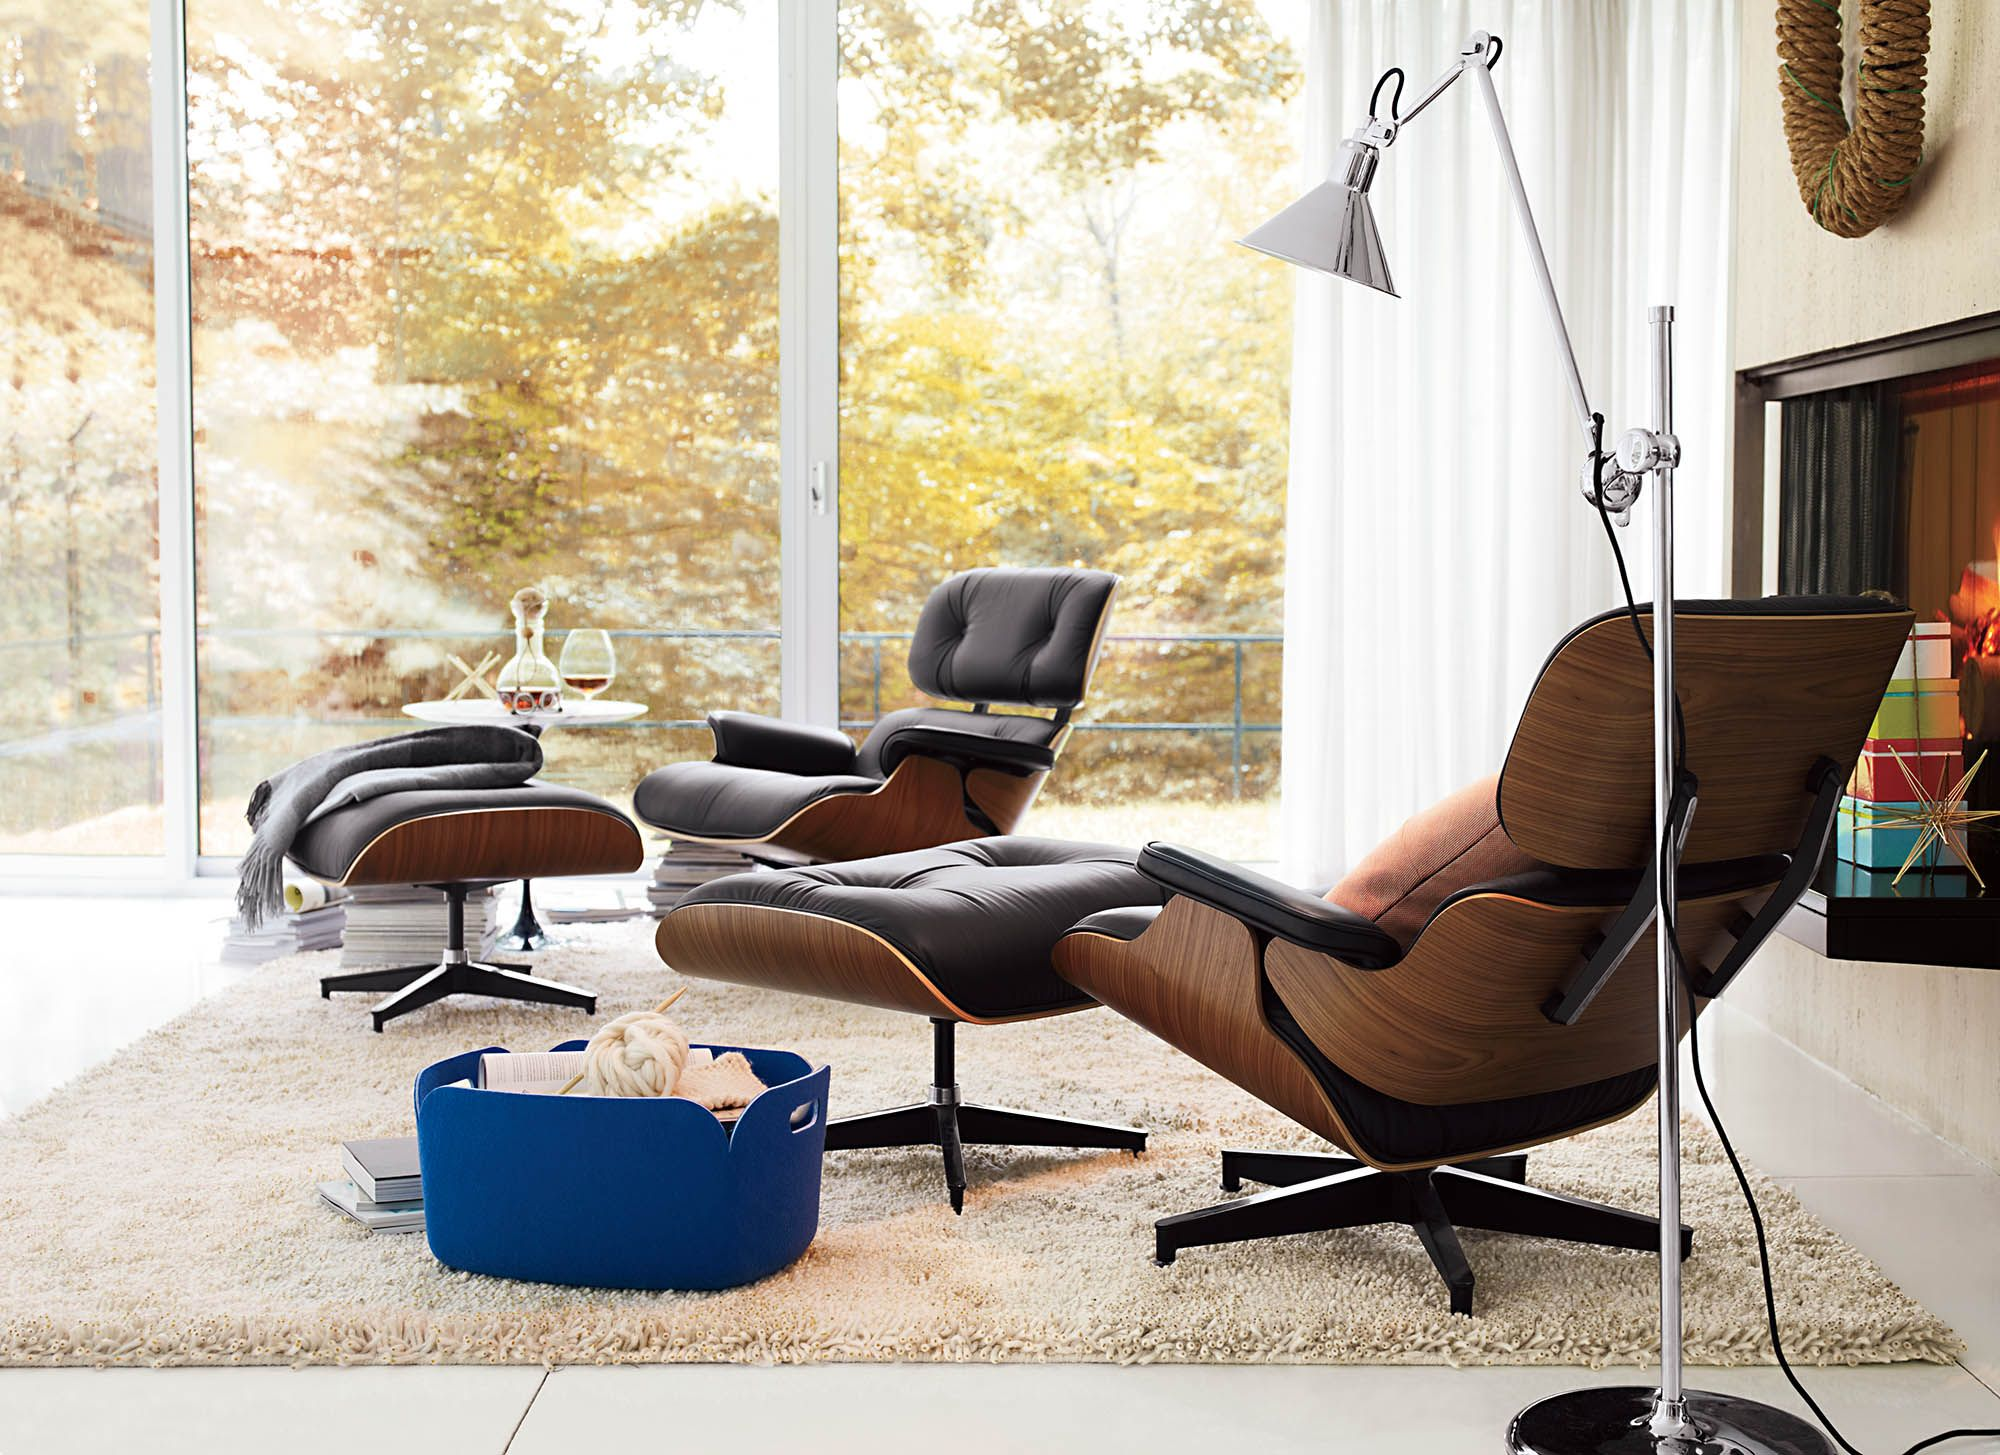 Eames lounge chair living room - Restore Basket Medium Eames Lounge Chairspet